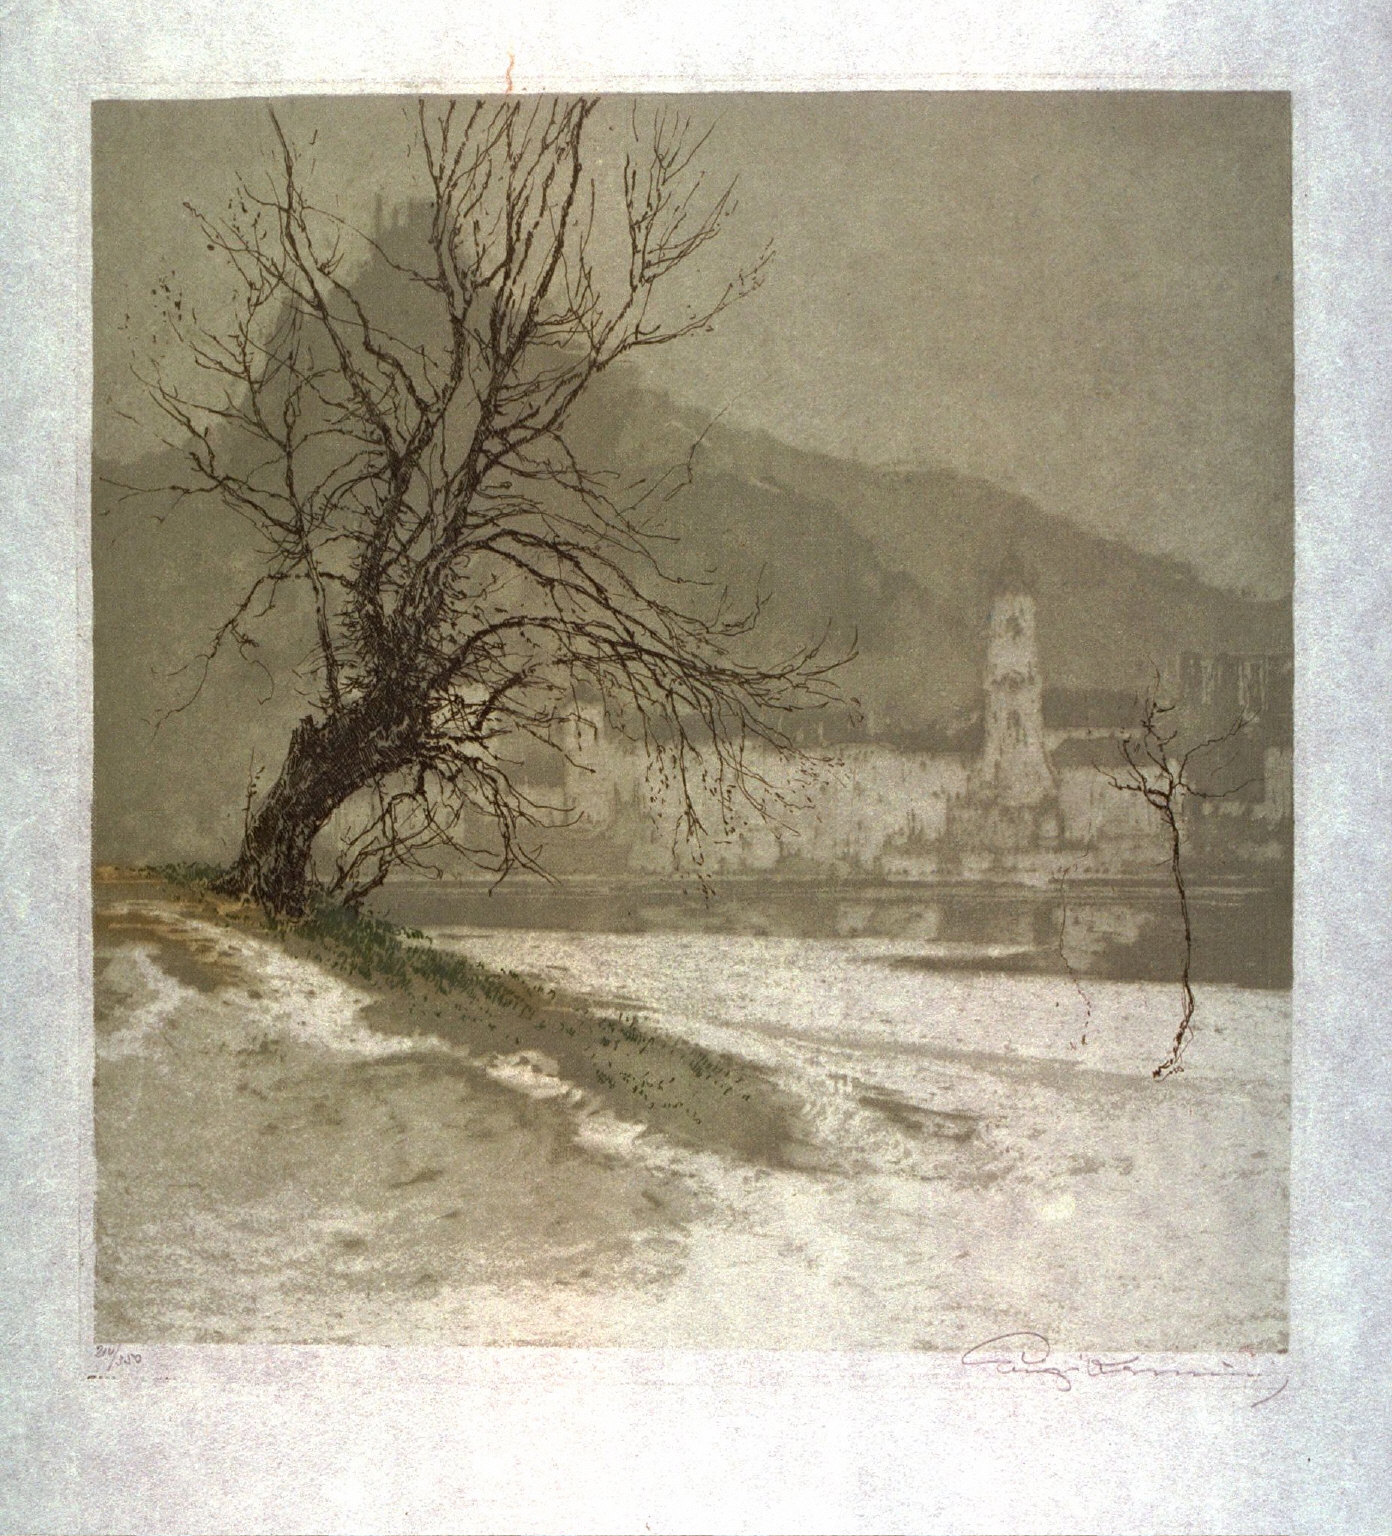 [Castle on the shore of a river with a tree in the foreground]